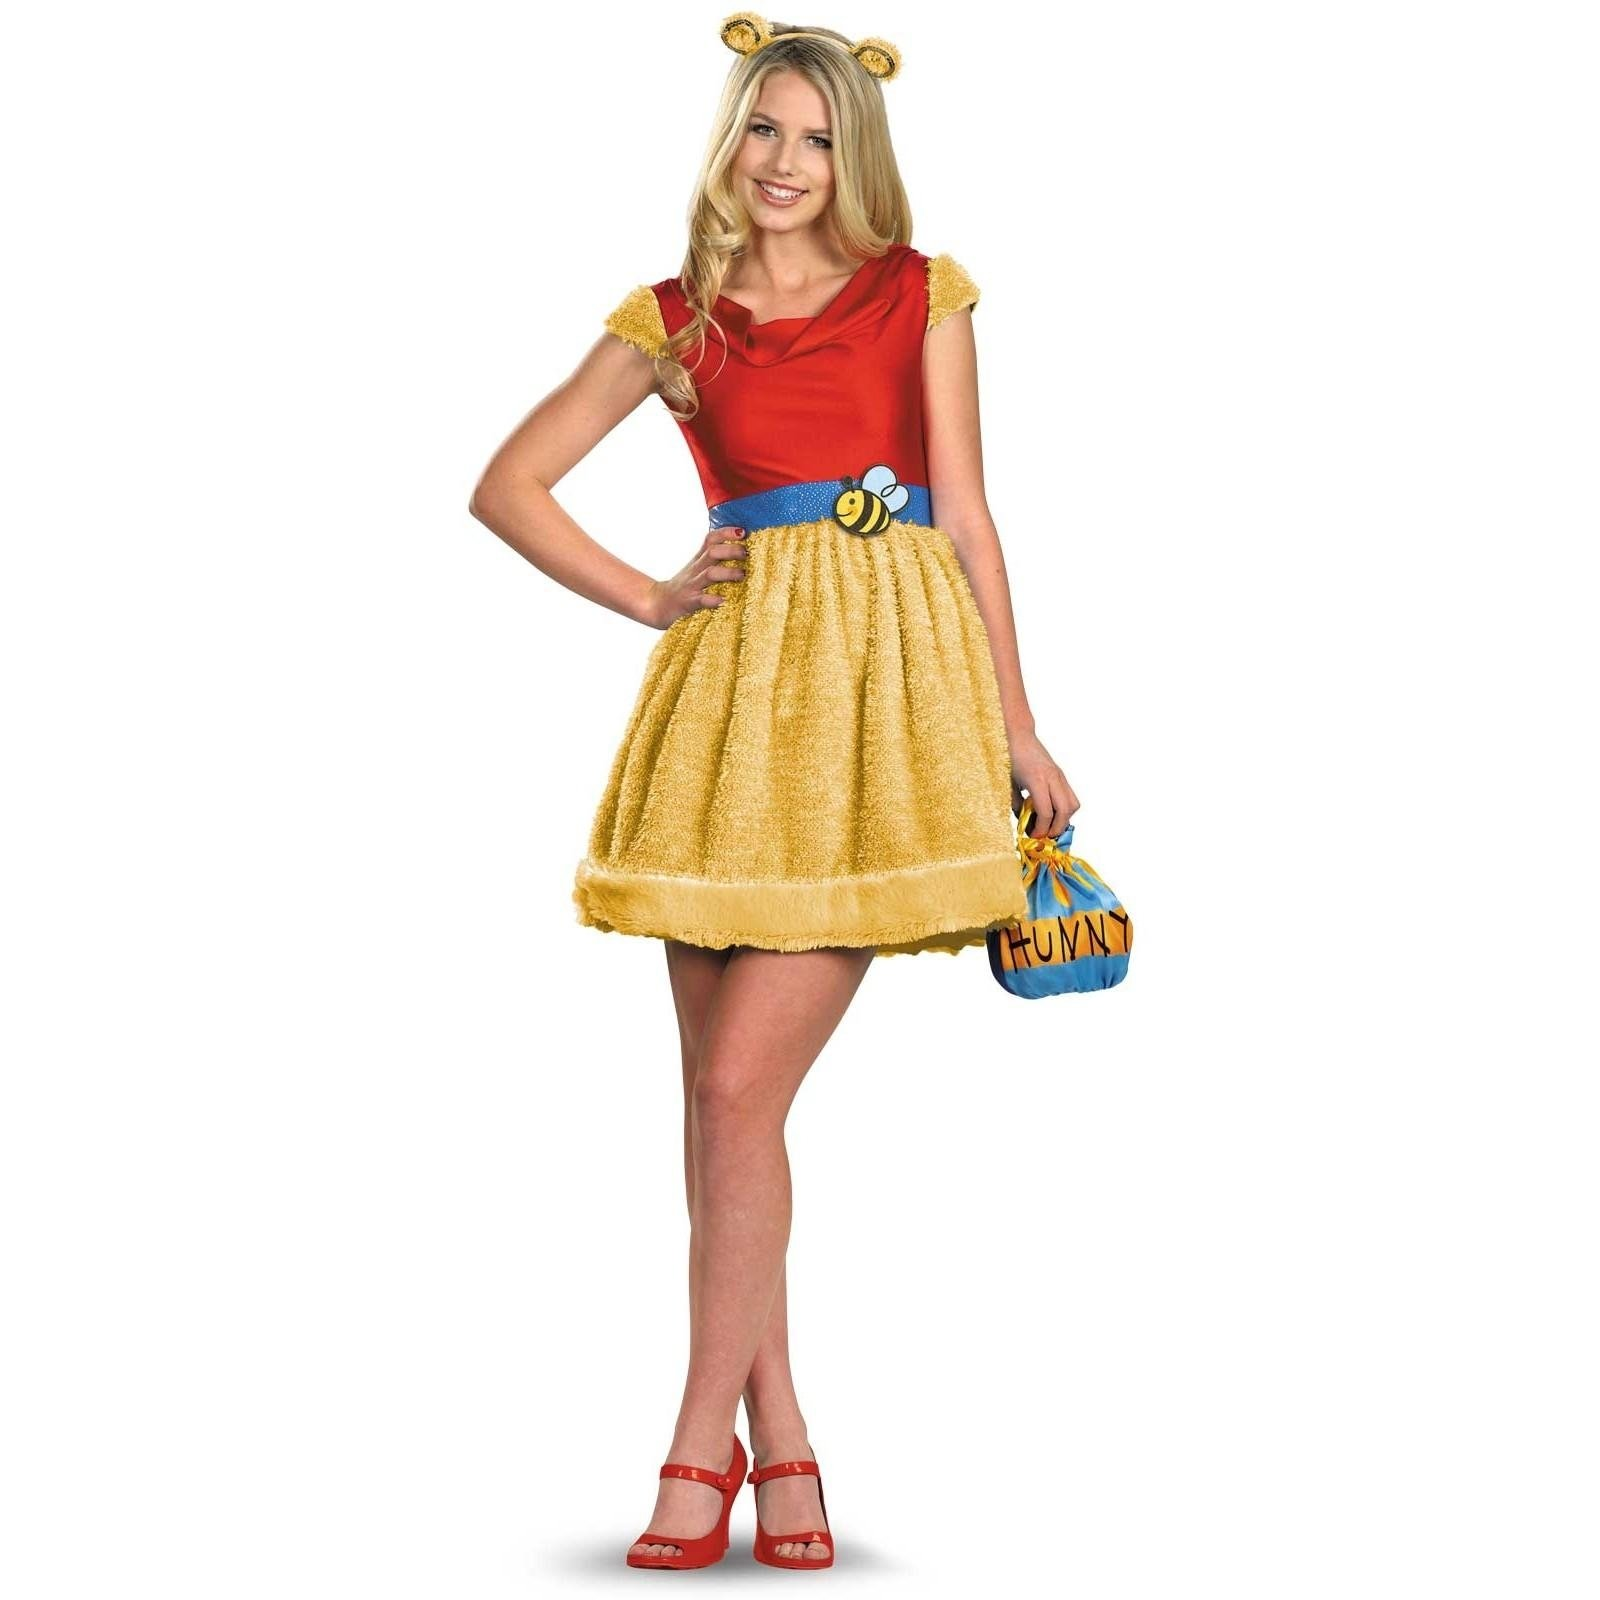 10 Fantastic Creative Halloween Costume Ideas For Women 2012 winnie the pooh diy costumes for teen girls google search 2020